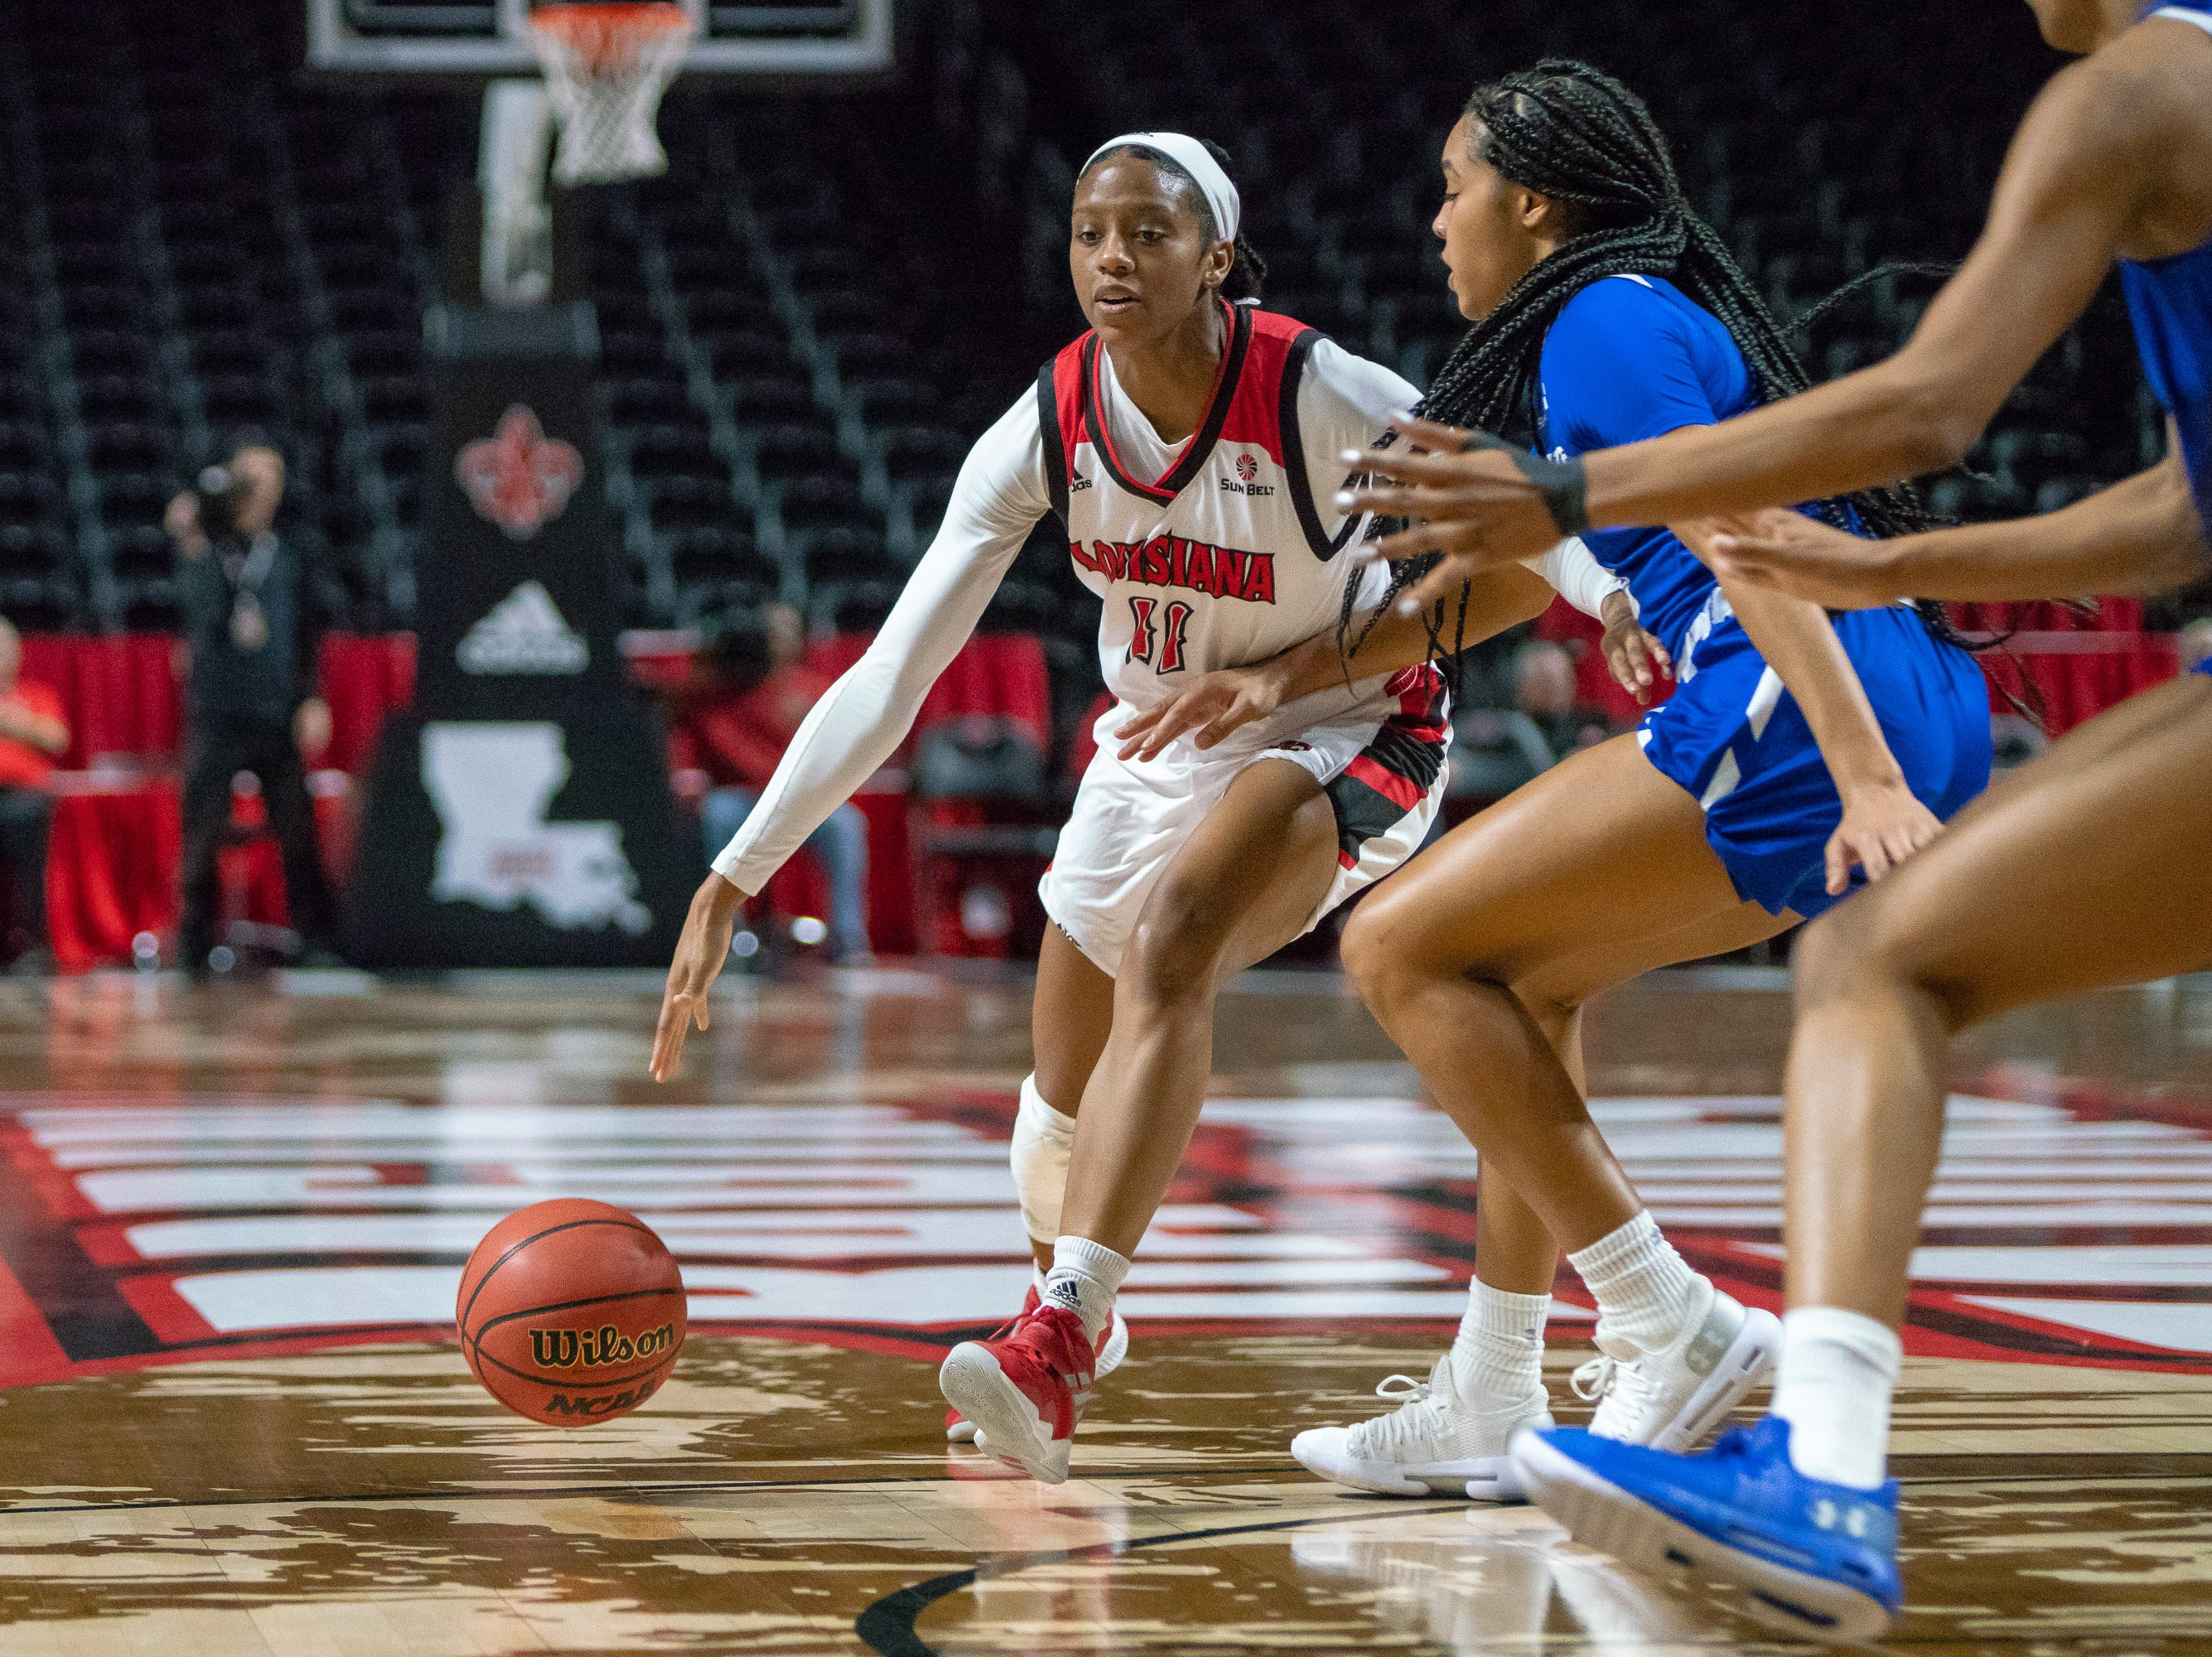 UL's Skyler Goodwin drives the ball to the goal as the Ragin' Cajuns play against the Georgia State Panthers at the Cajundome on January 10, 2019.